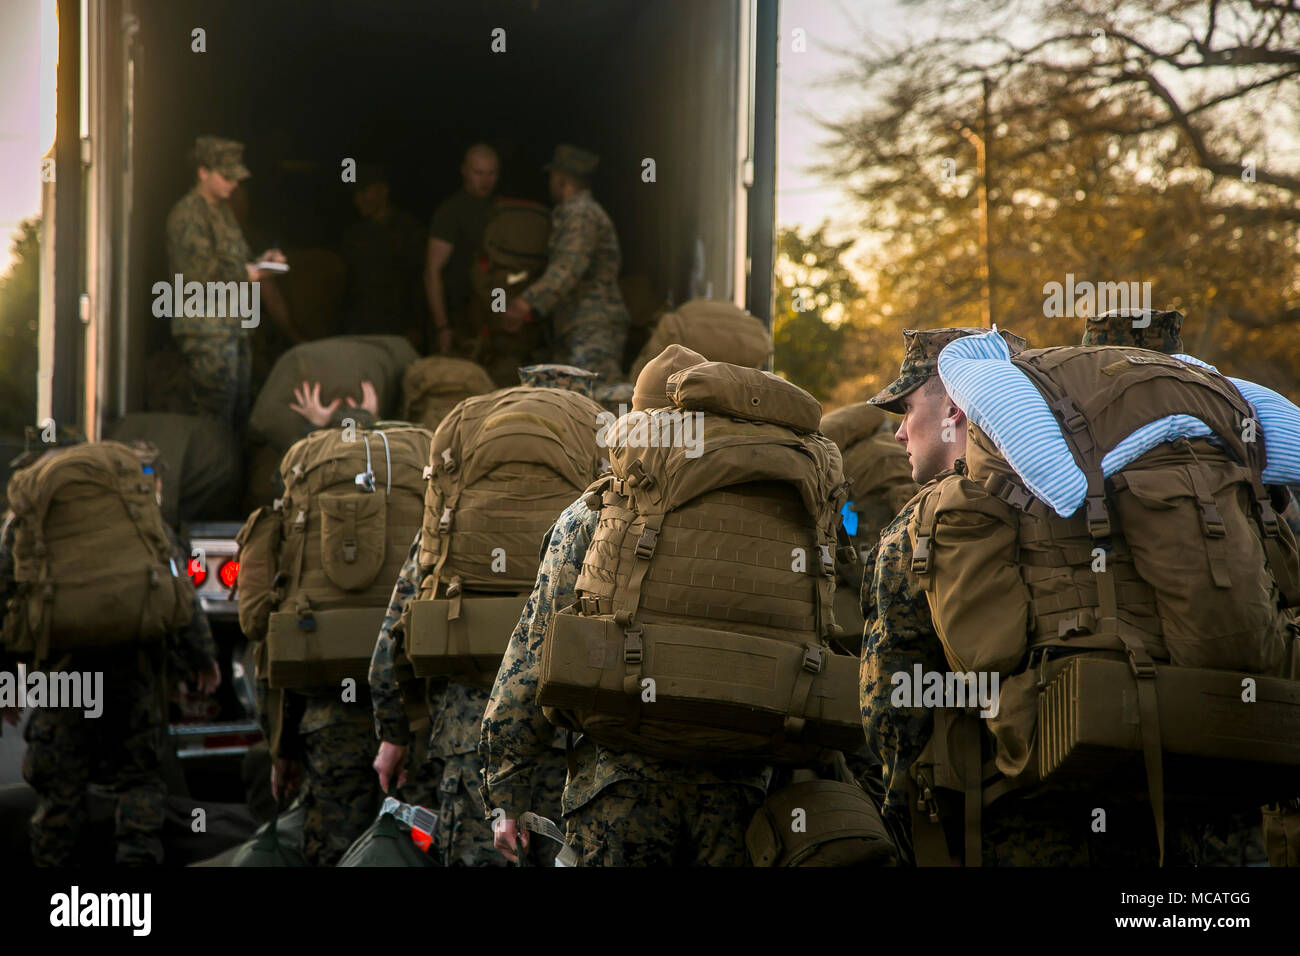 U.S. Marines and Sailors with the 26th Marine Expeditionary Unit (MEU) load their equipment onto a truck prior to departing Camp Lejeune, N.C., to embark on a deployment at sea Feb. 6, 2018. The MEU Marines and Sailors are deploying to support maritime security operations, crisis response and theater security cooperation, while also providing a forward expeditionary naval presence in Europe and the Middle East. - Stock Image